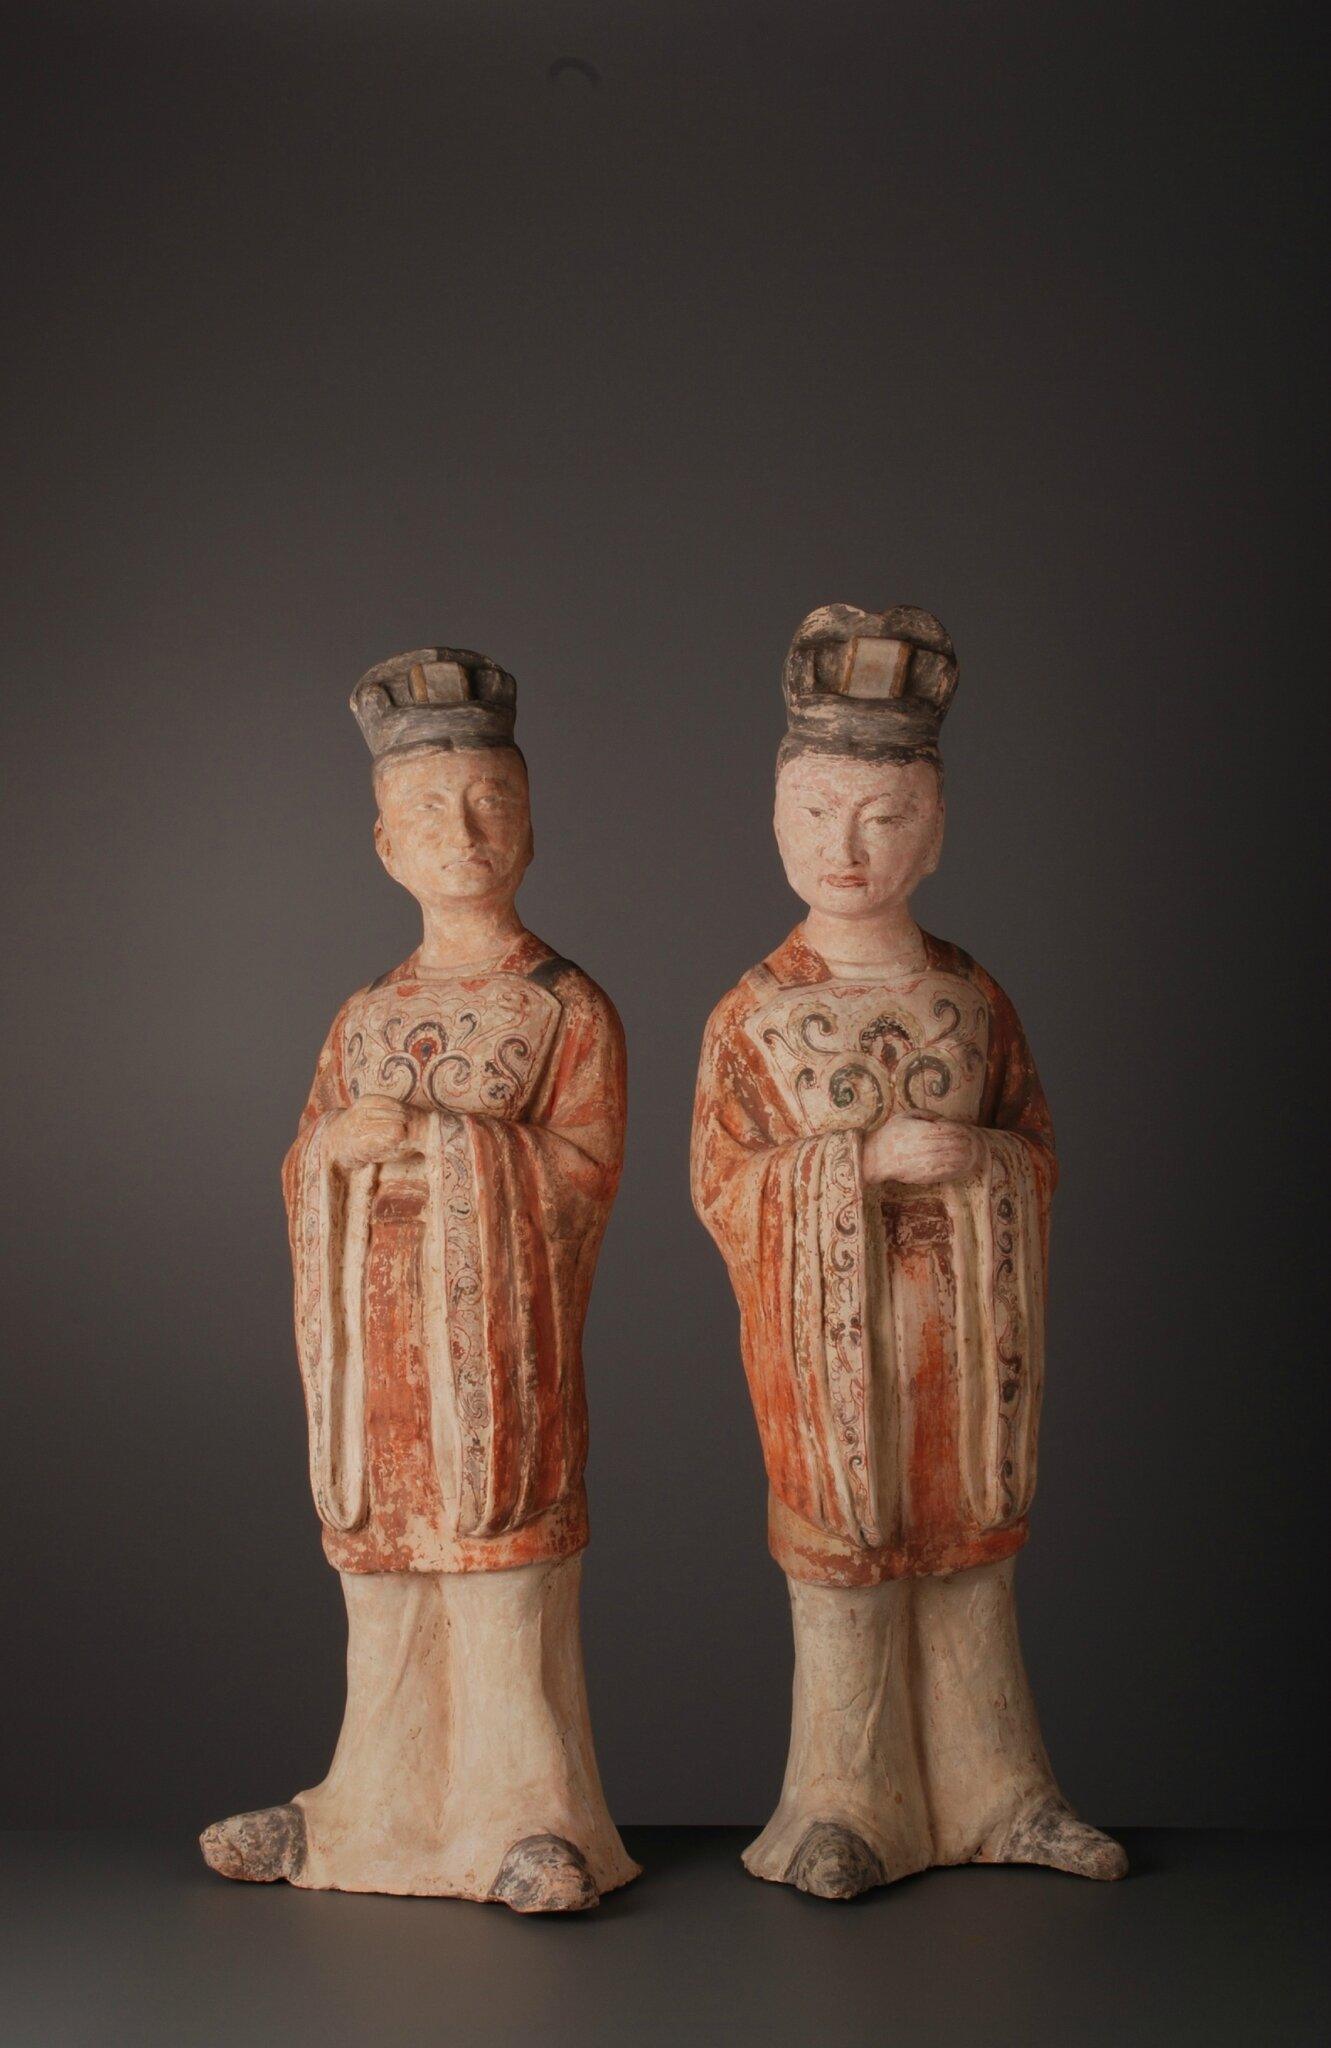 Dignitaries, China, Tang Dynasty (618-907)